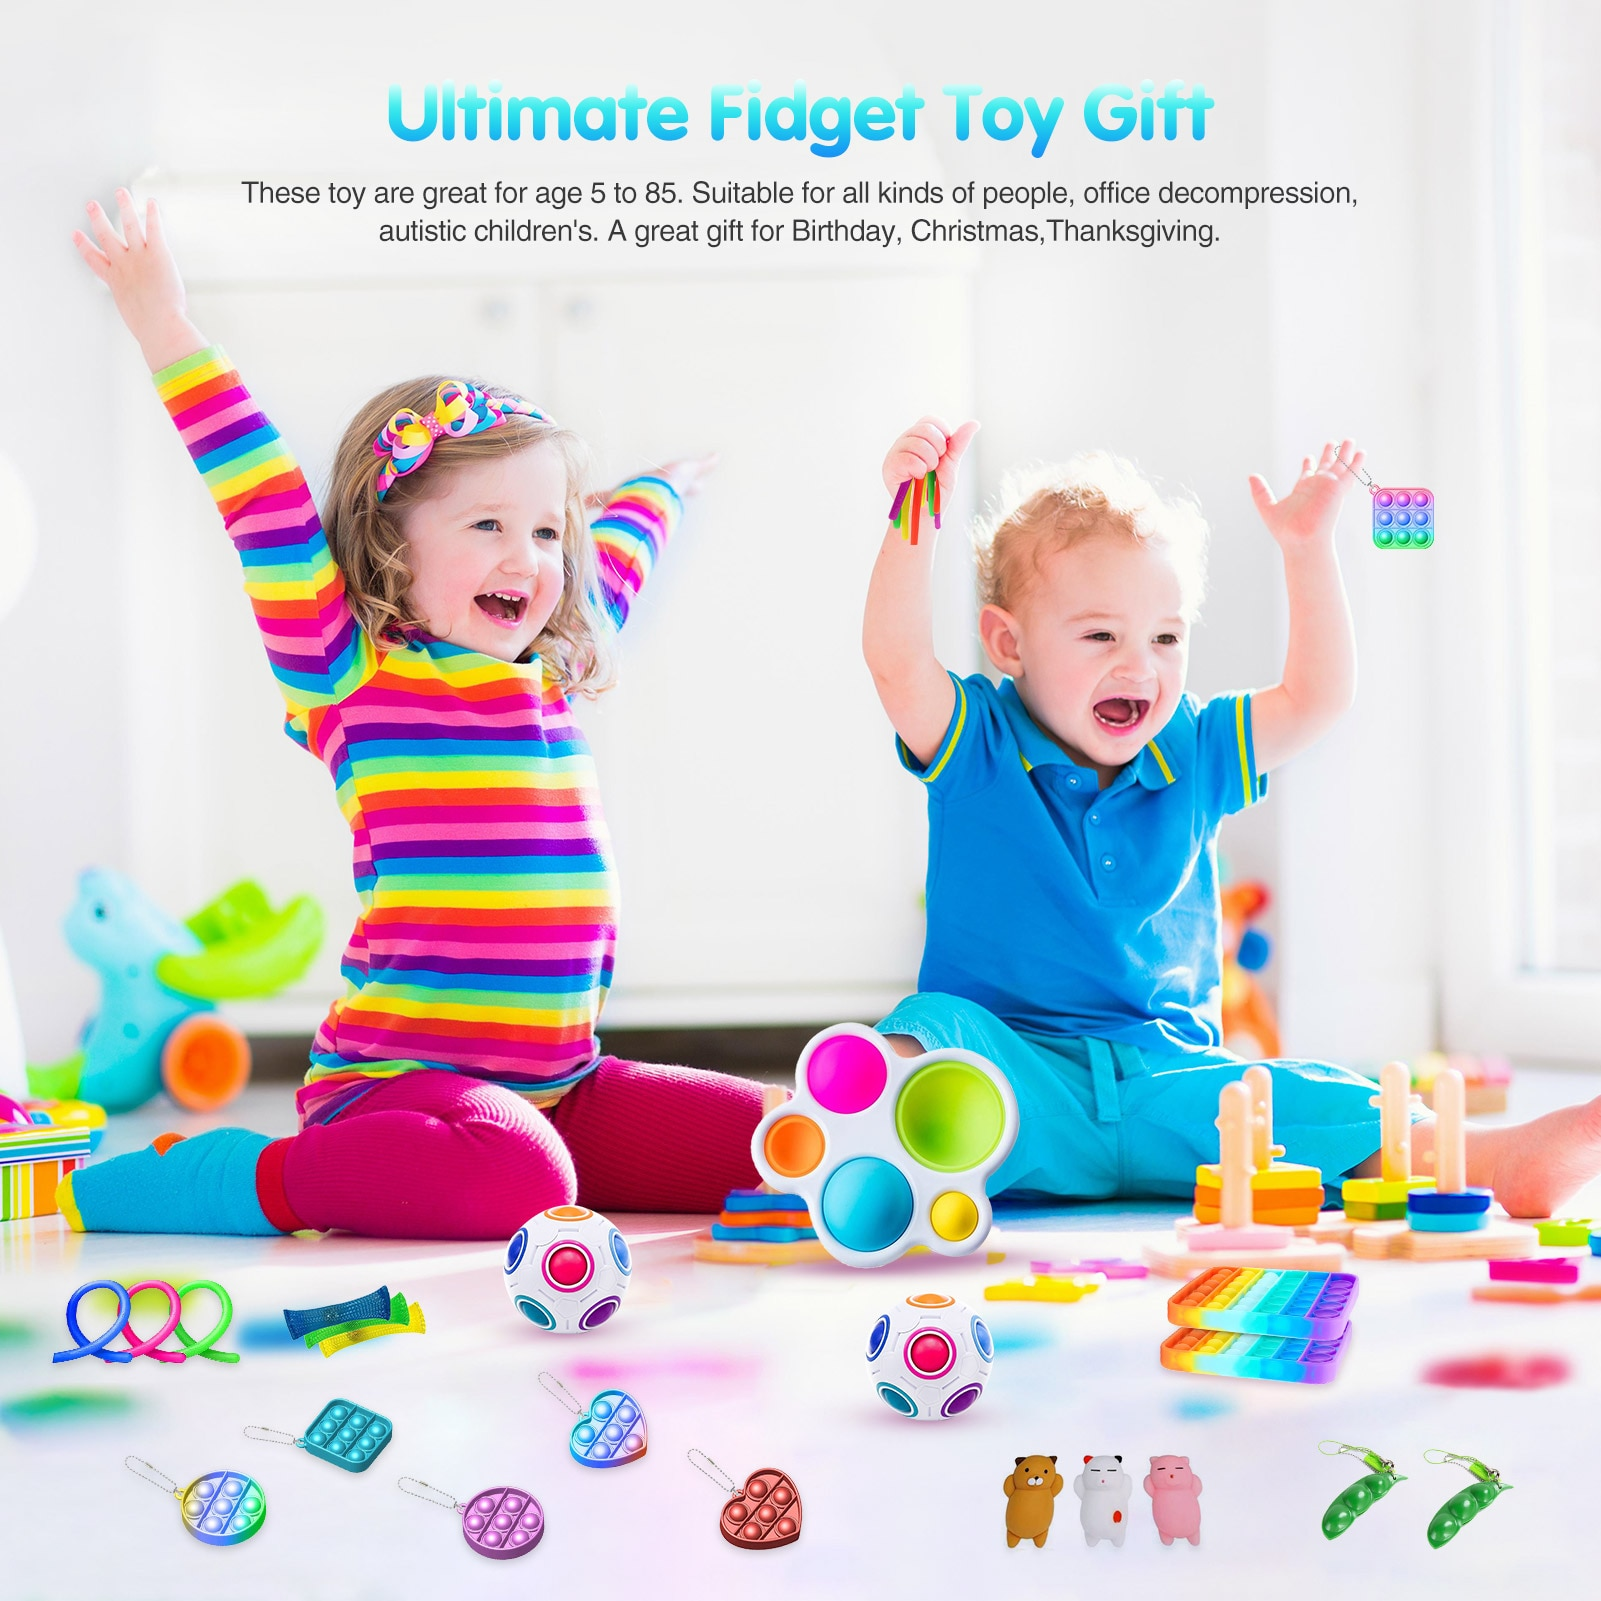 23 Pack Fidget Sensory Toy Set Children Adult Stress Relief Pop it Toys Autism Special Needs Stress Reliever Kids Funny Gift enlarge